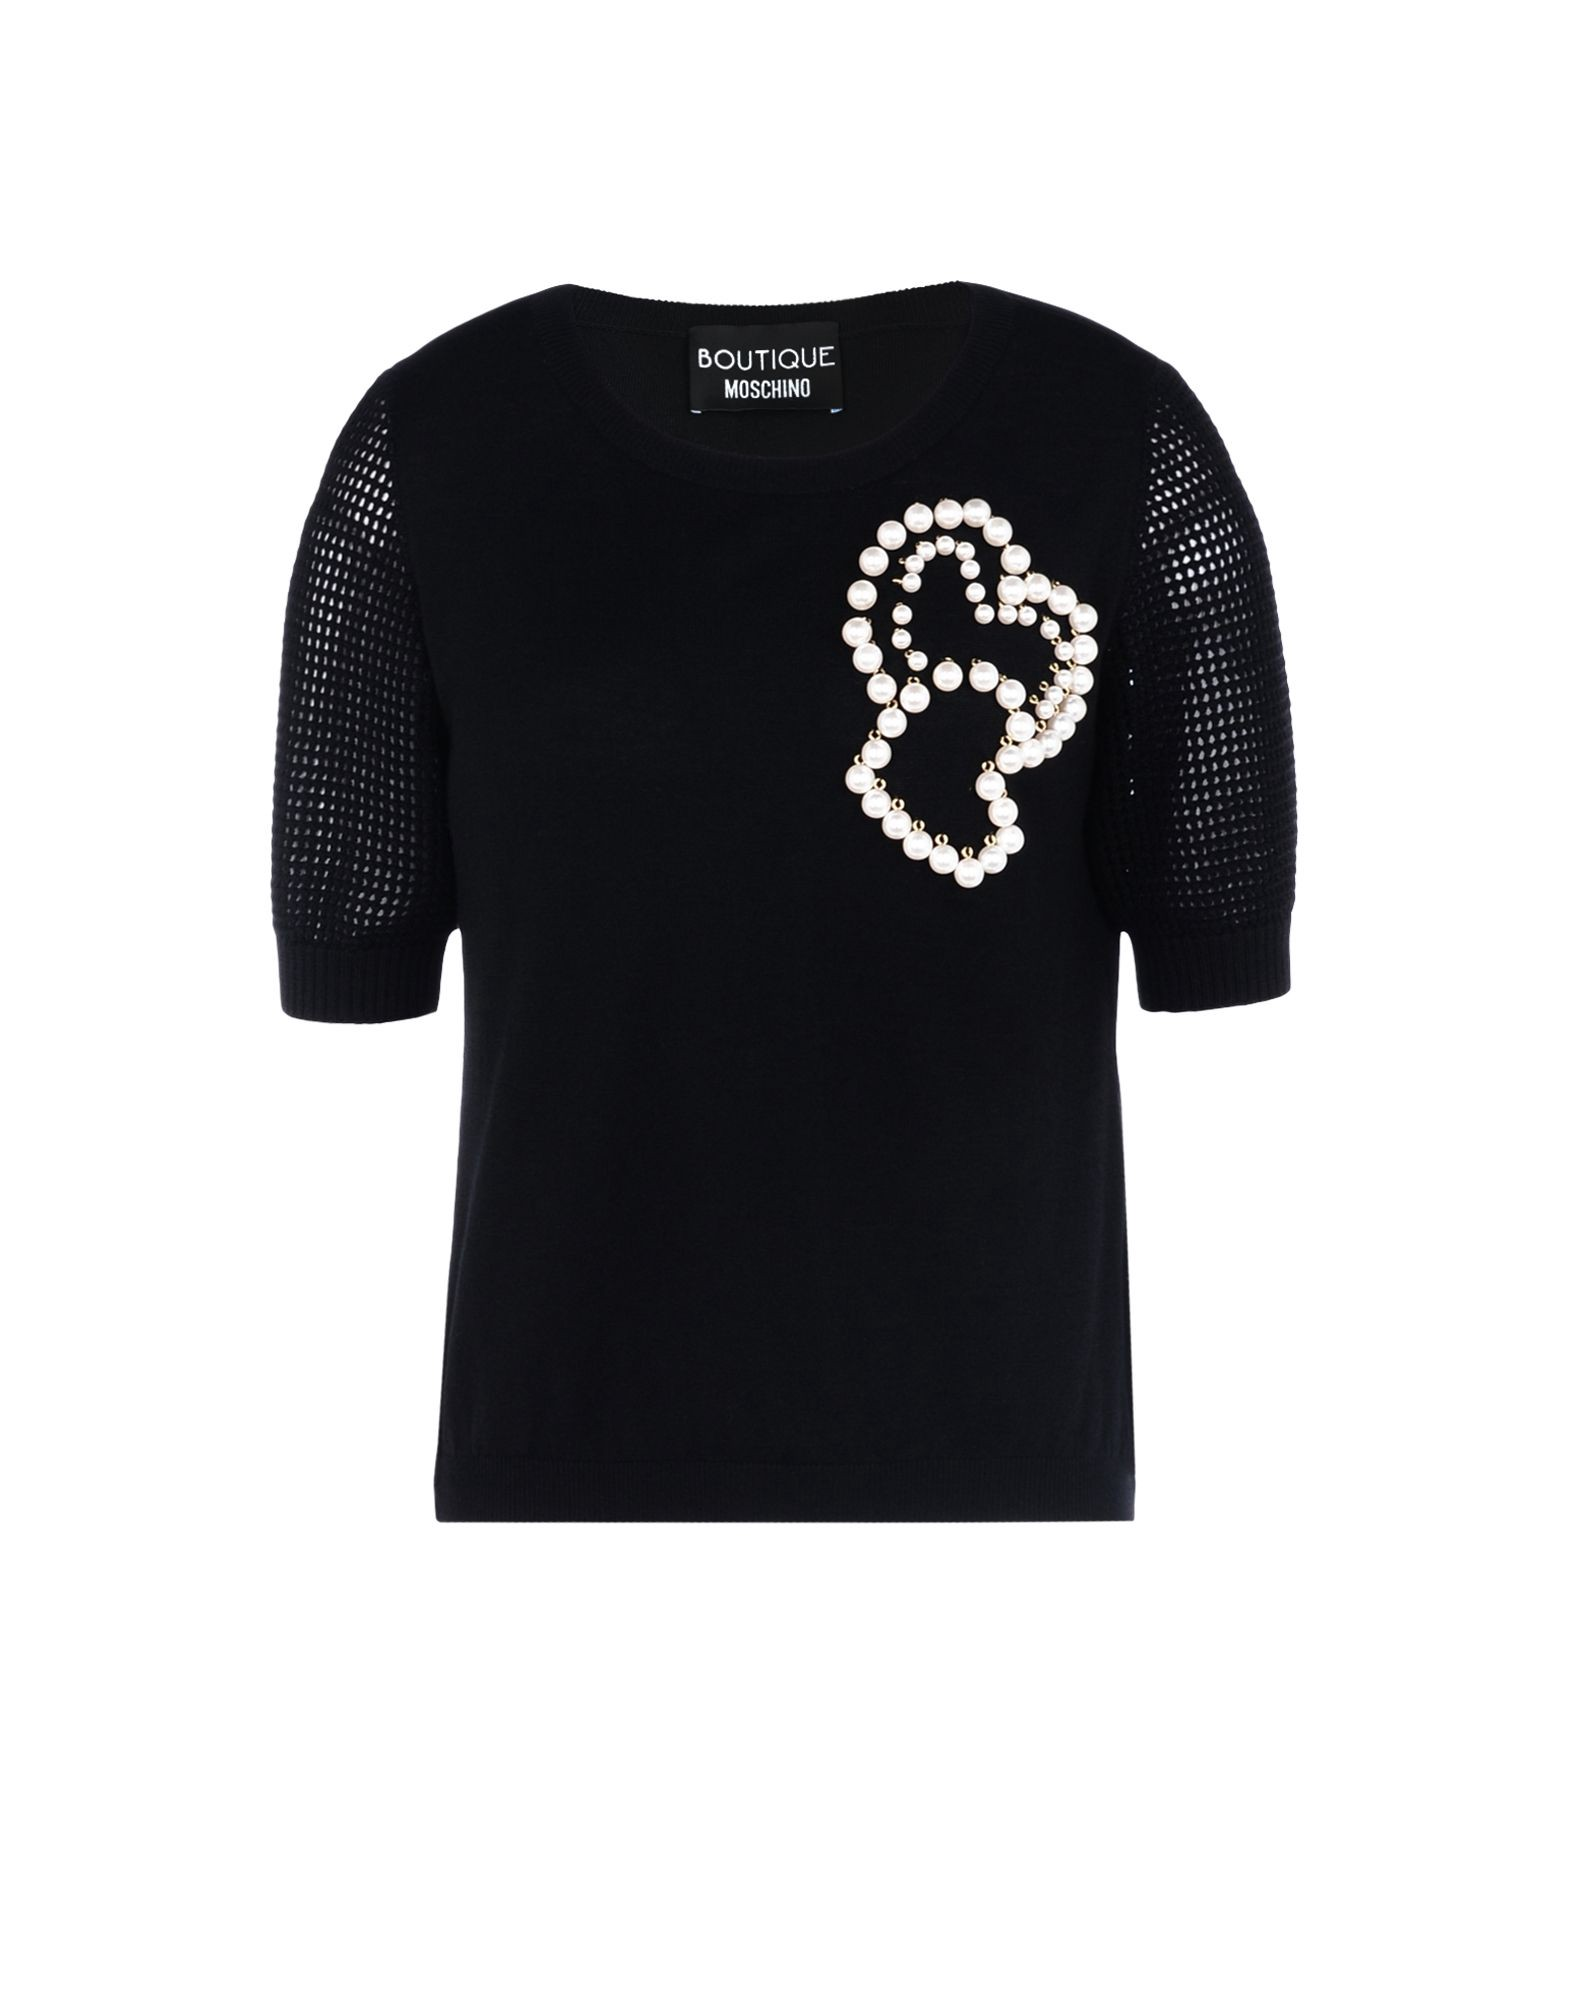 MOSCHINO Boutique  Short Sleeve Sweater in Black